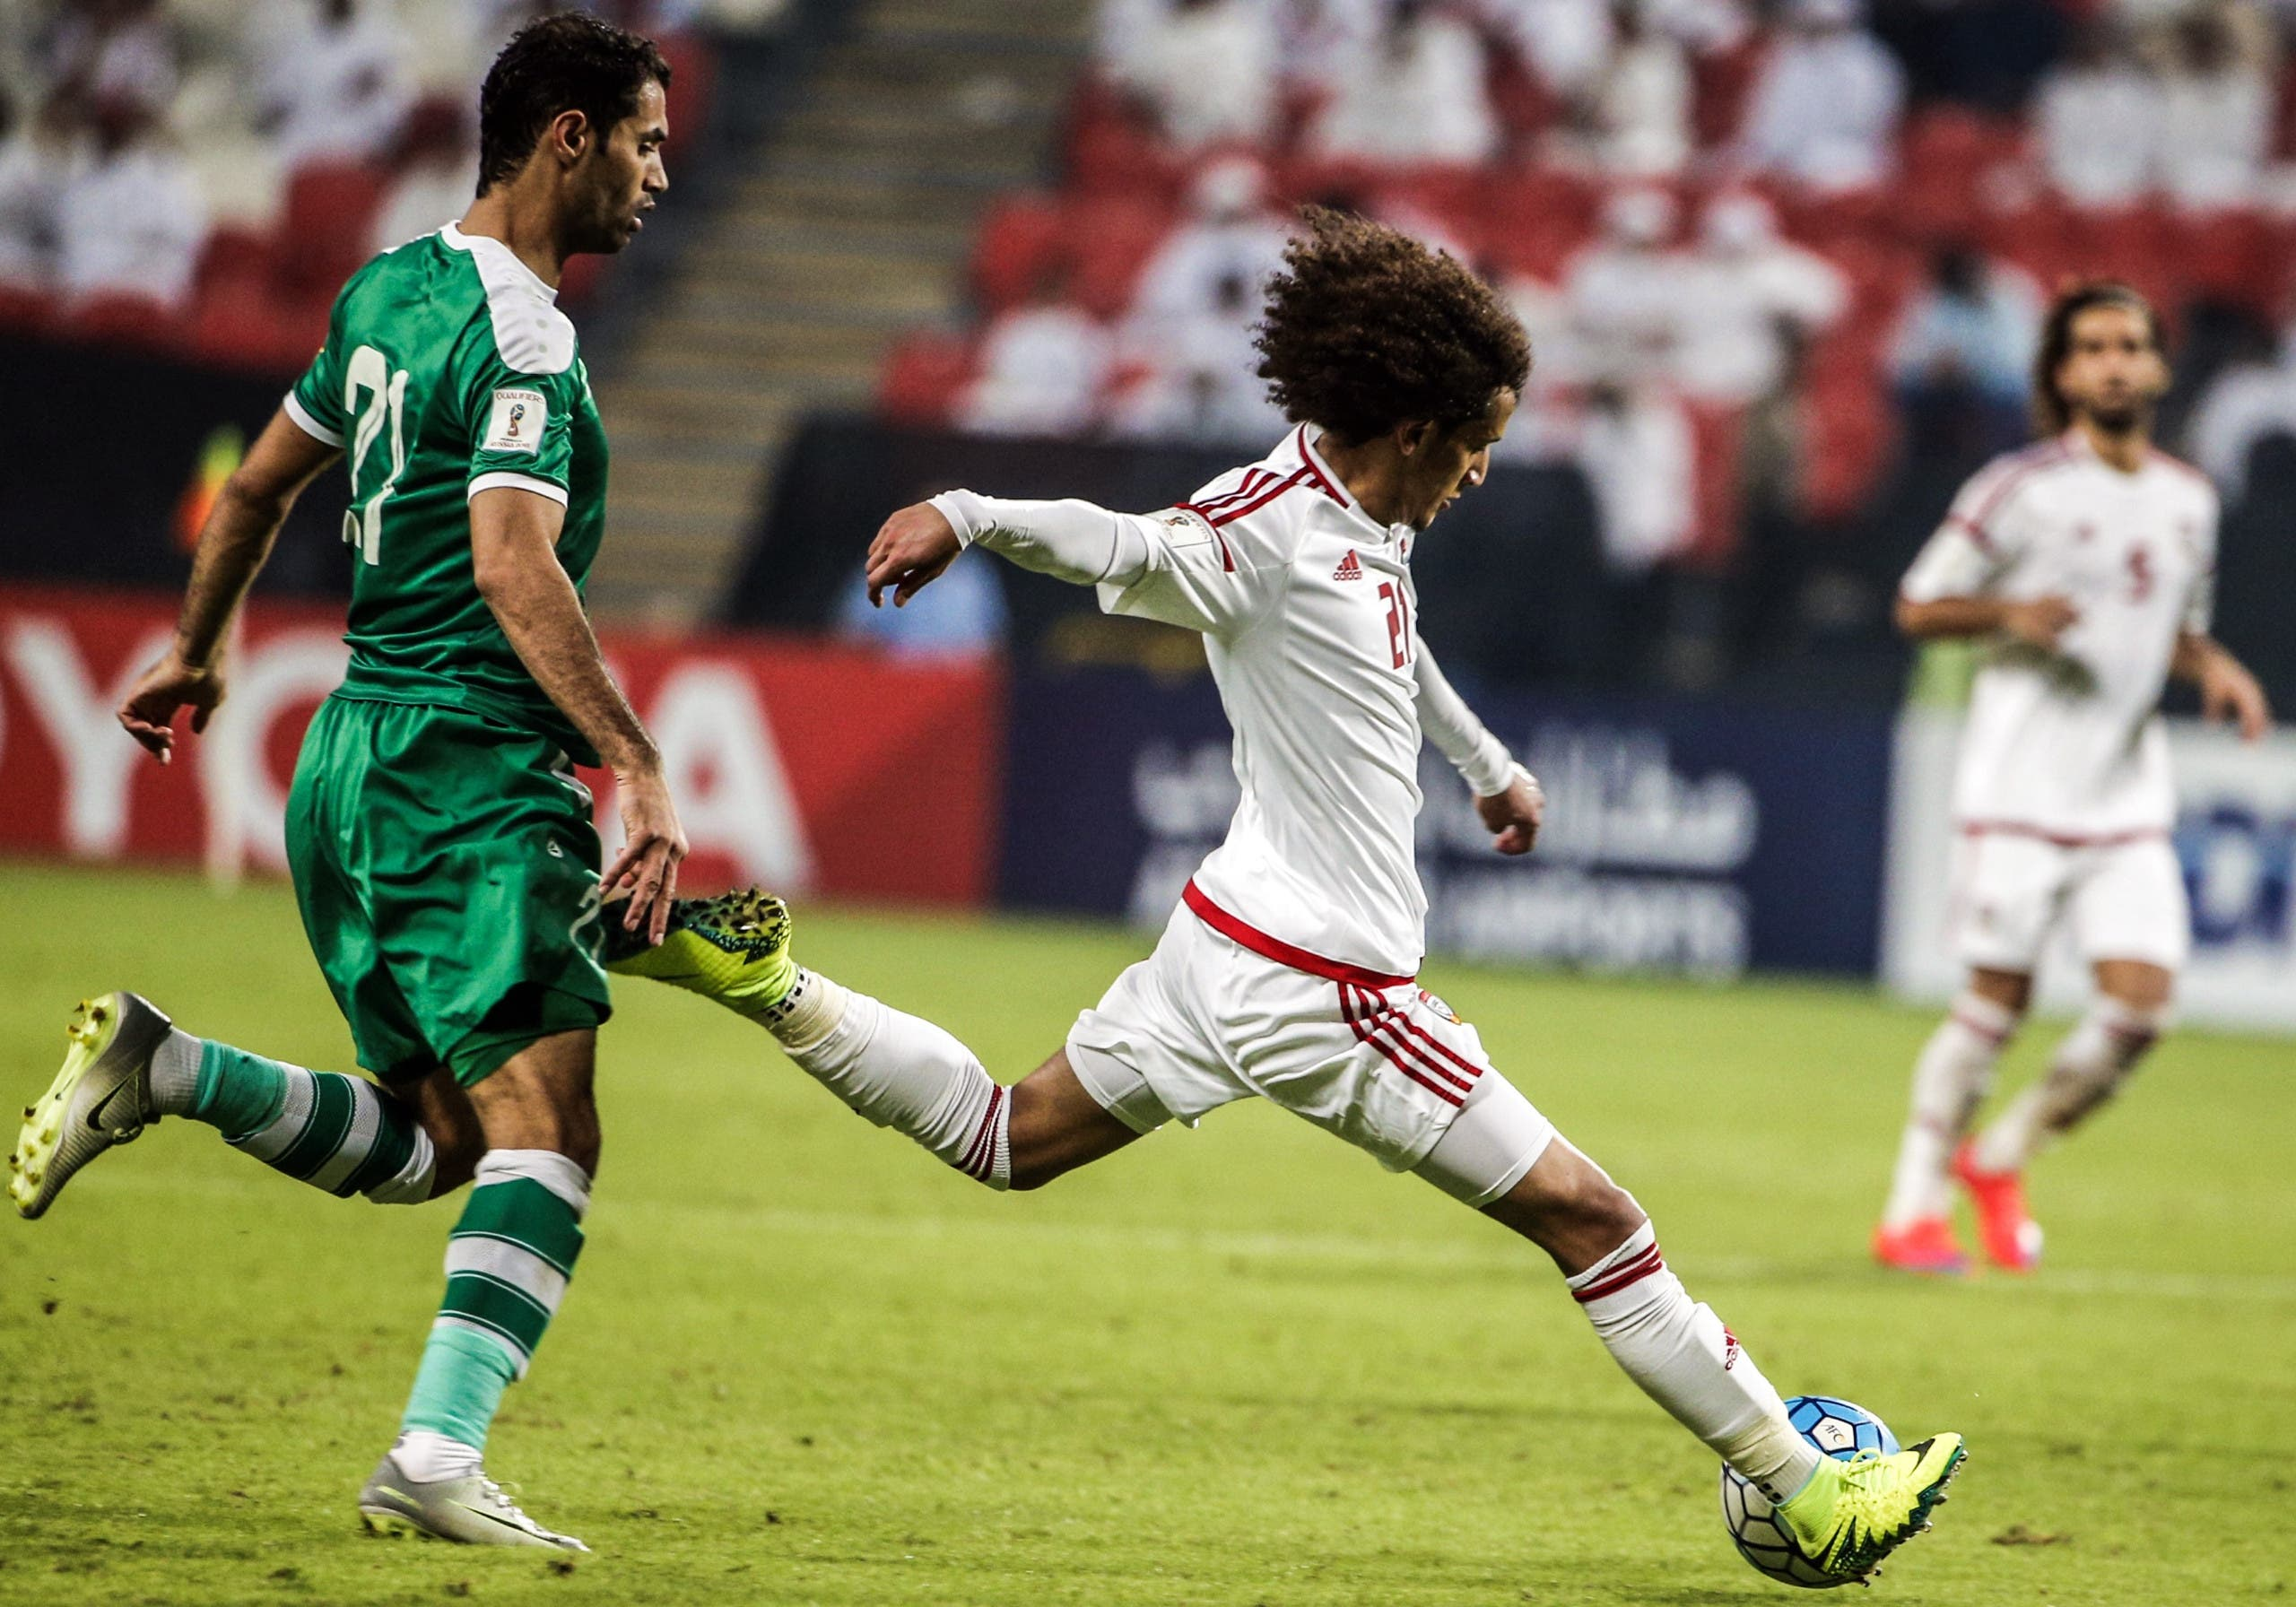 Iraqi's Saad Luaibi (L) vies for the ball with UAE's Omar Abdulrahman during the 2018 World Cup qualifying football match between Iraq and the United Arab Emirates at Sheikh Mohammed Bin Zayed stadium in Abu Dhabi on November 15, 2016.  Karim Sahib / AFP